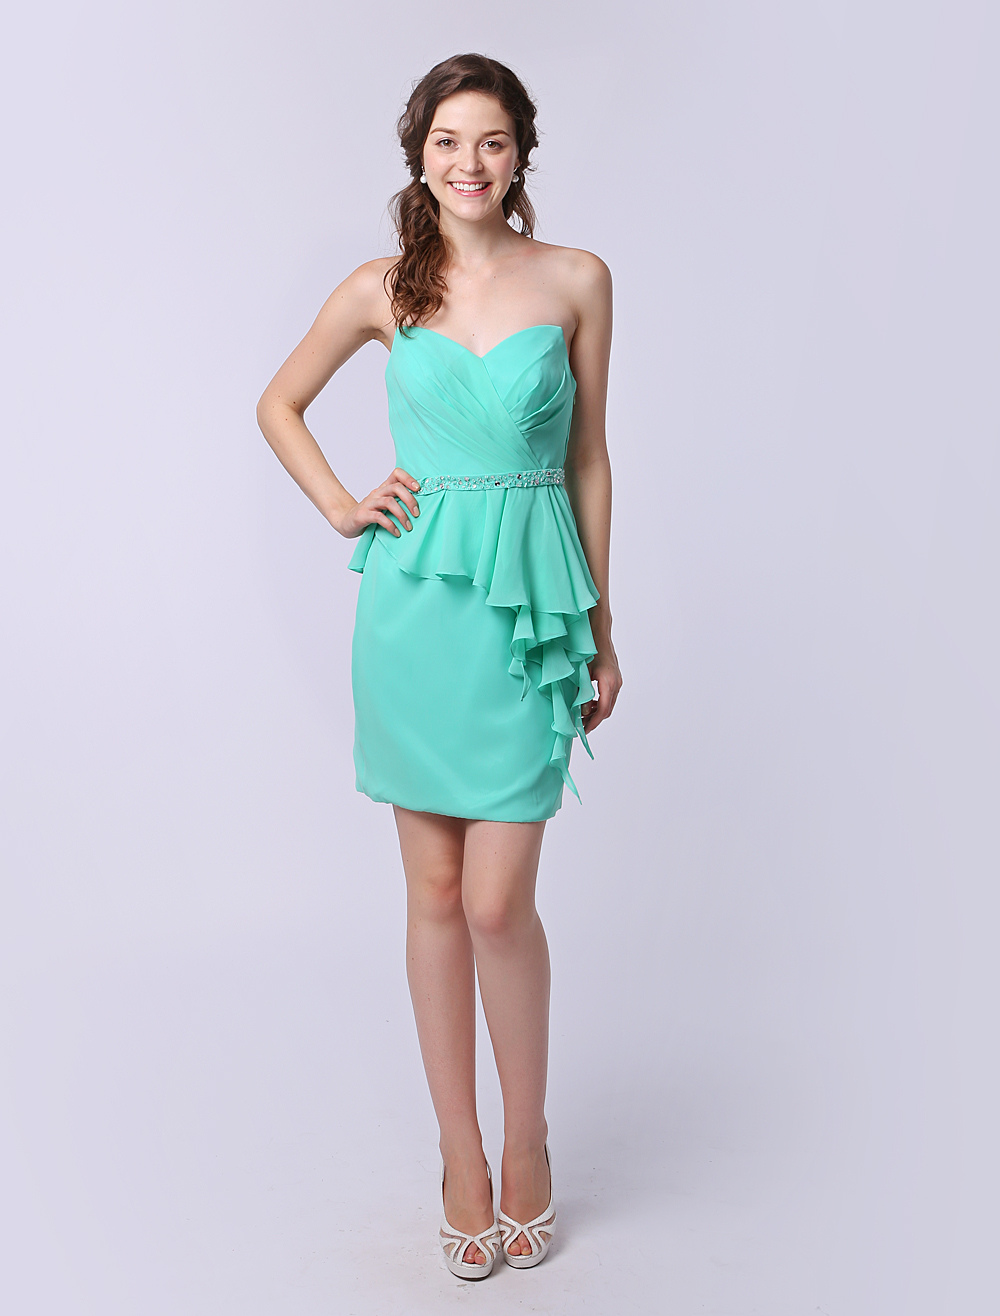 Short Sweetheart Bridesmaid Dress Mint Green Ruffle Chiffon Knee Length Wedding Party Dress Milanoo